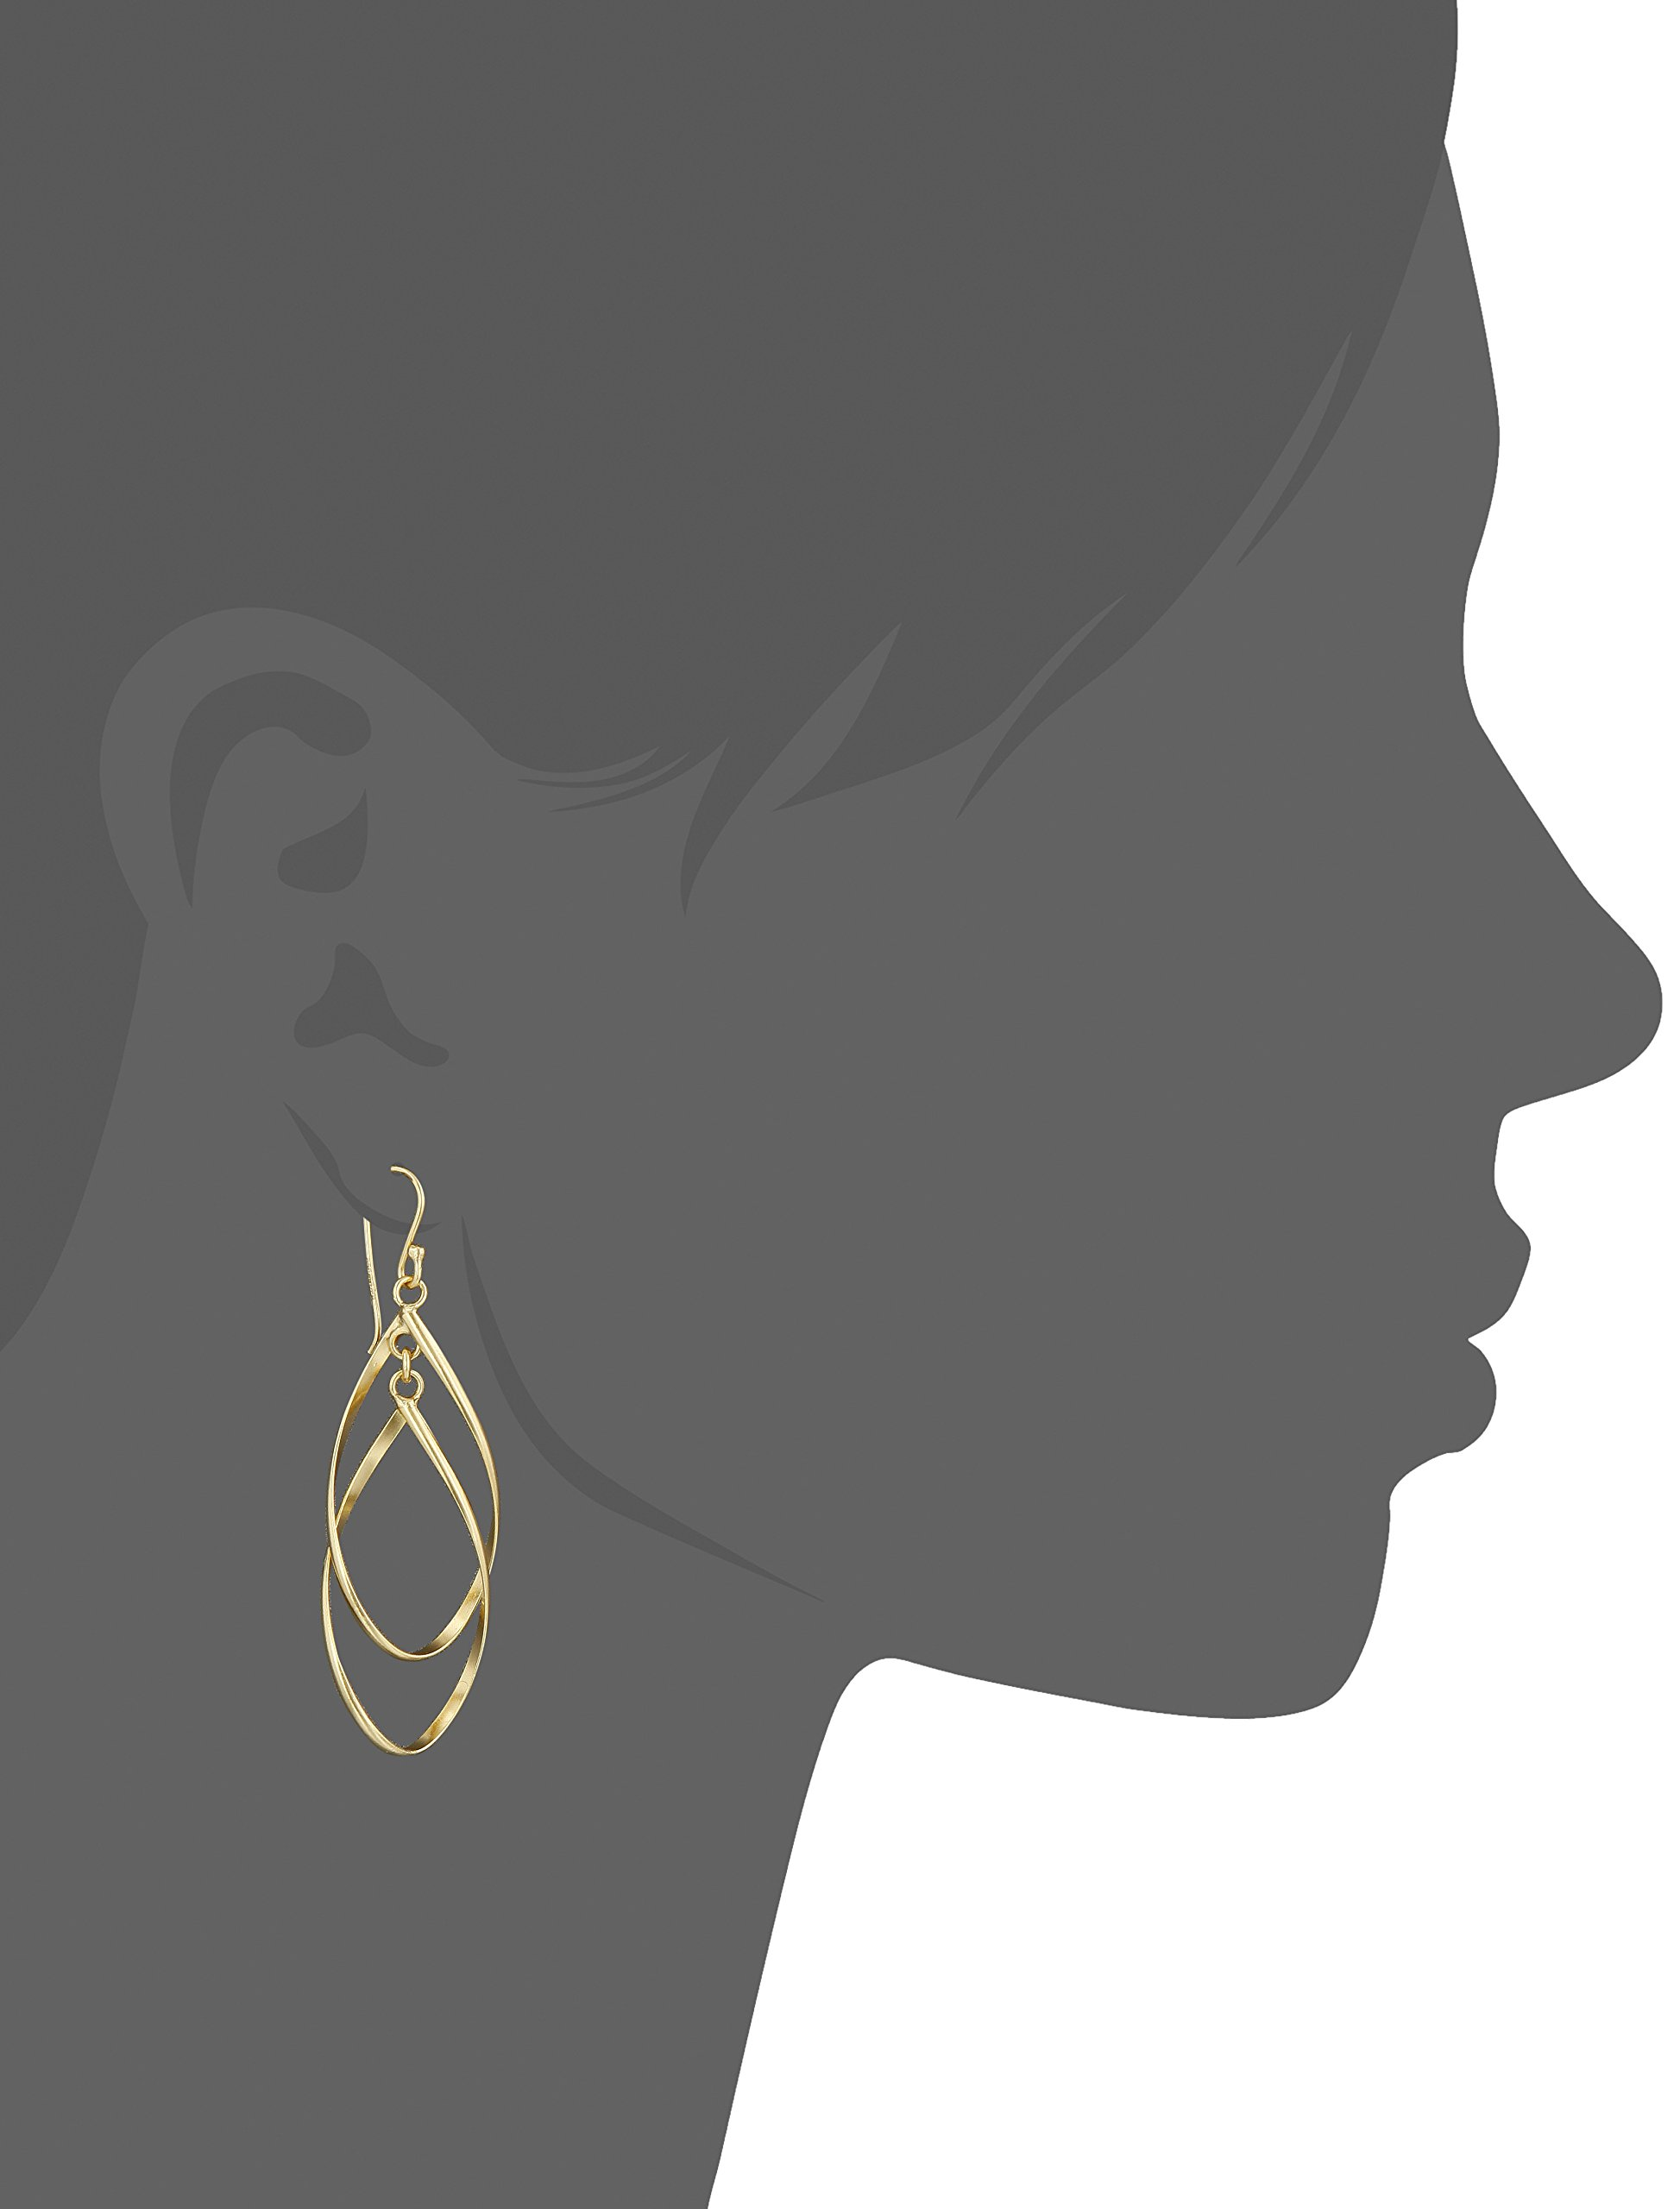 Gold Plated Sterling Silver Double Elongated Oval Twist French Wire Drop Earrings by Amazon Collection (Image #2)